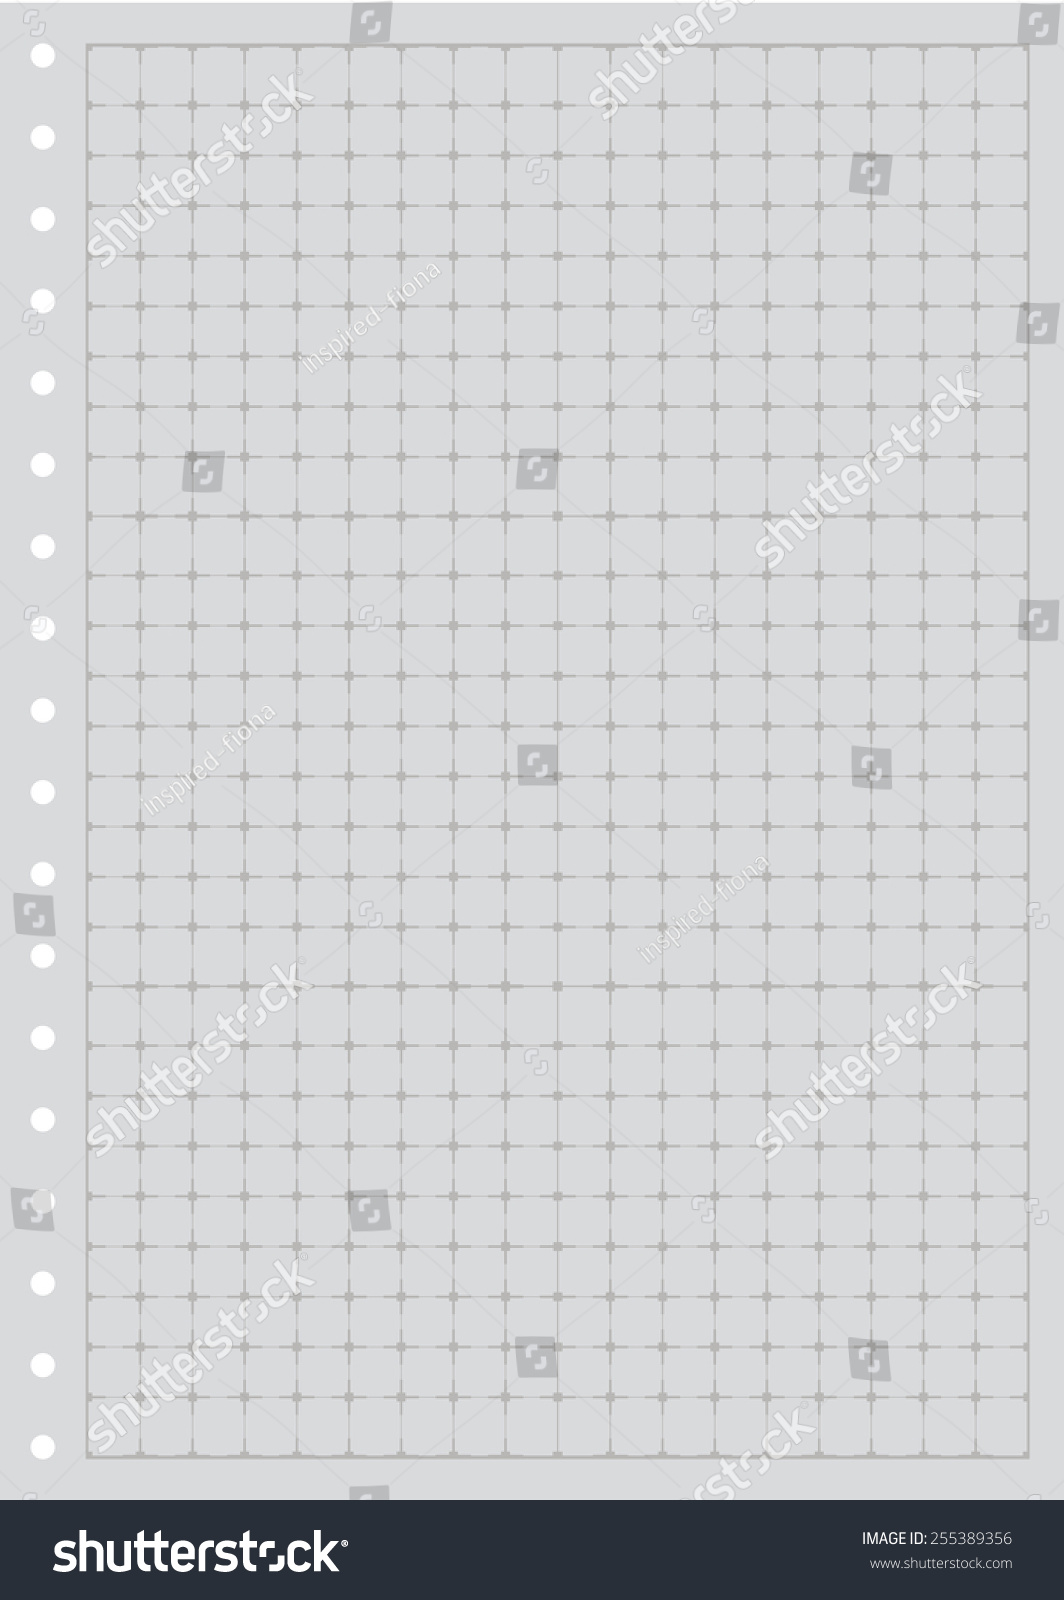 Sheet Paper Grid Notebook Graph Style Stock Vector HD (Royalty Free ...